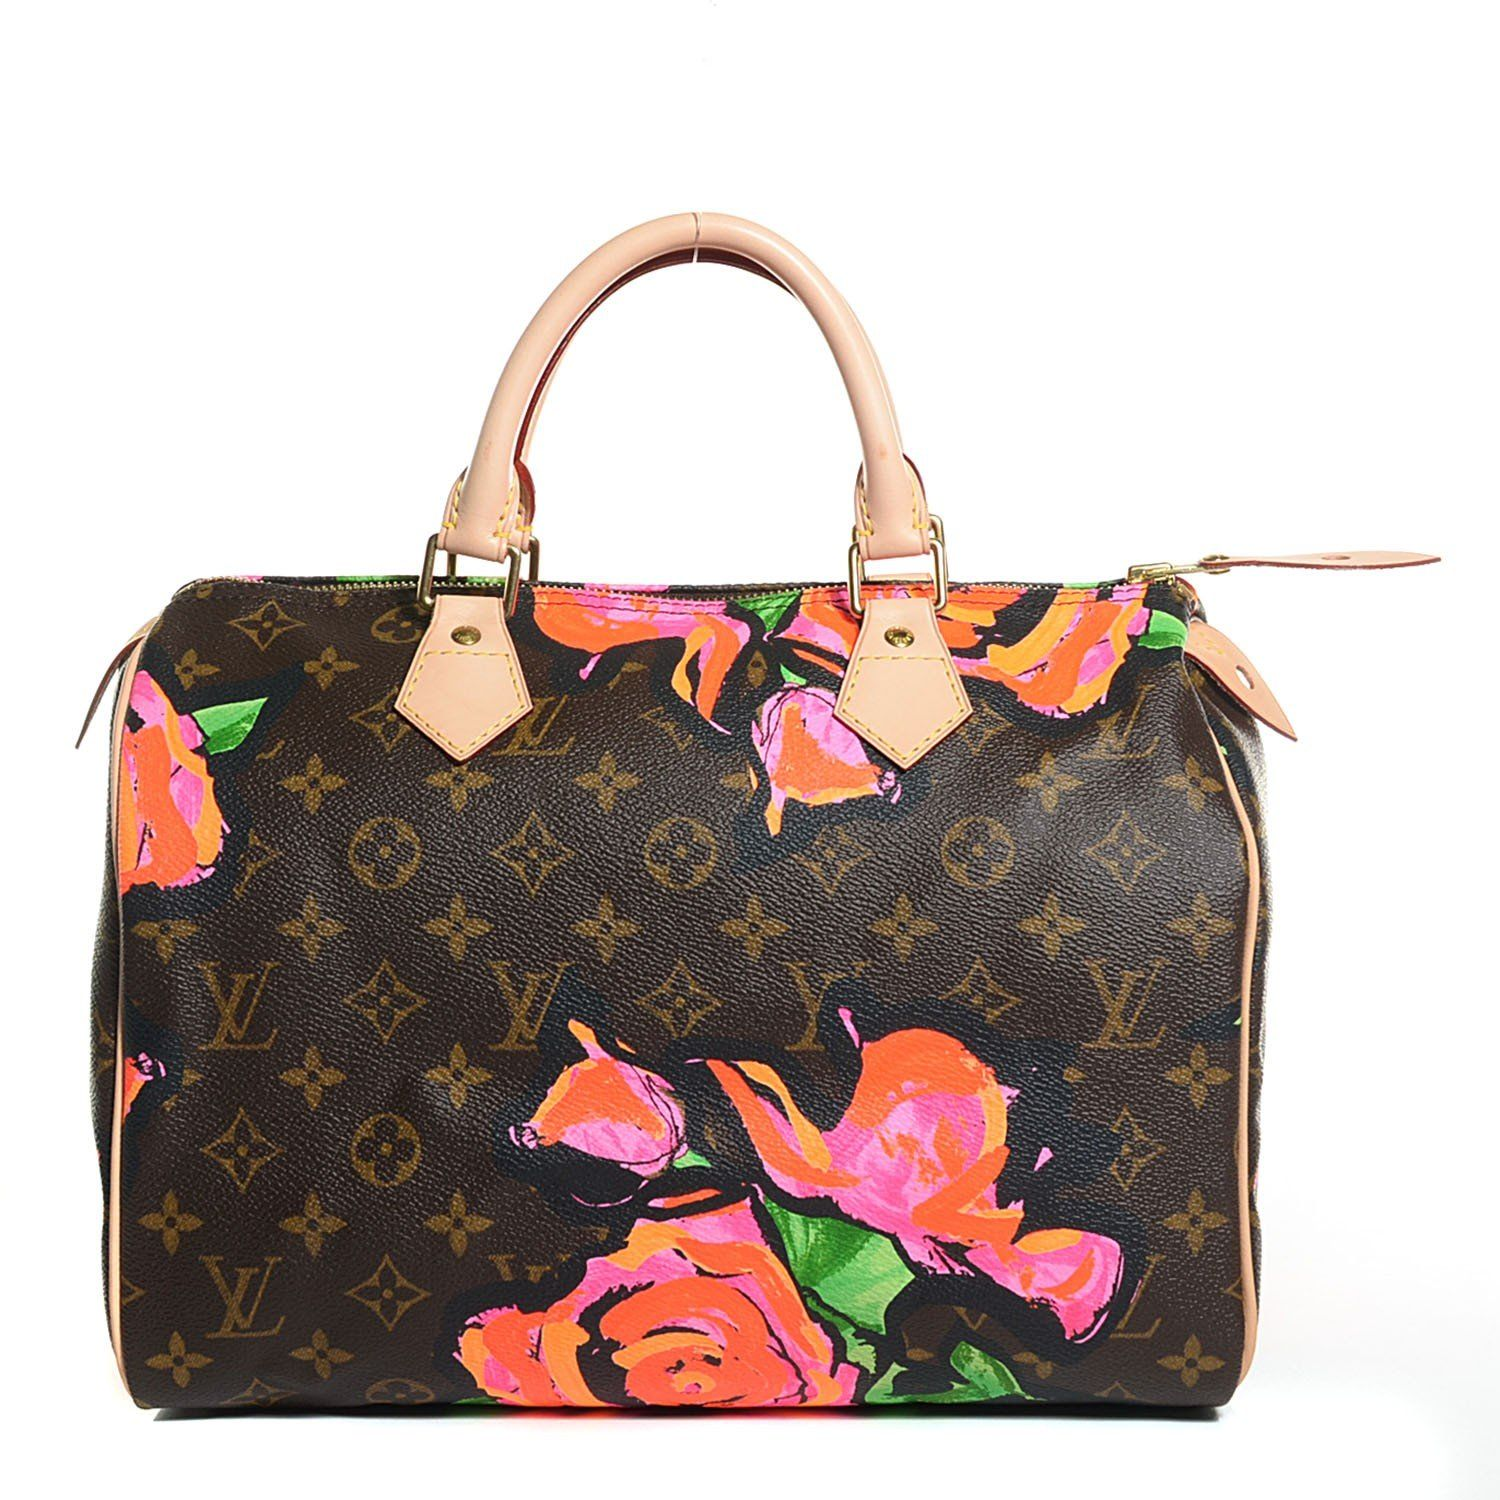 This is an authentic LOUIS VUITTON Monogram Stephen Sprouse Roses Speedy  30. This stylish limited 49a5251db9